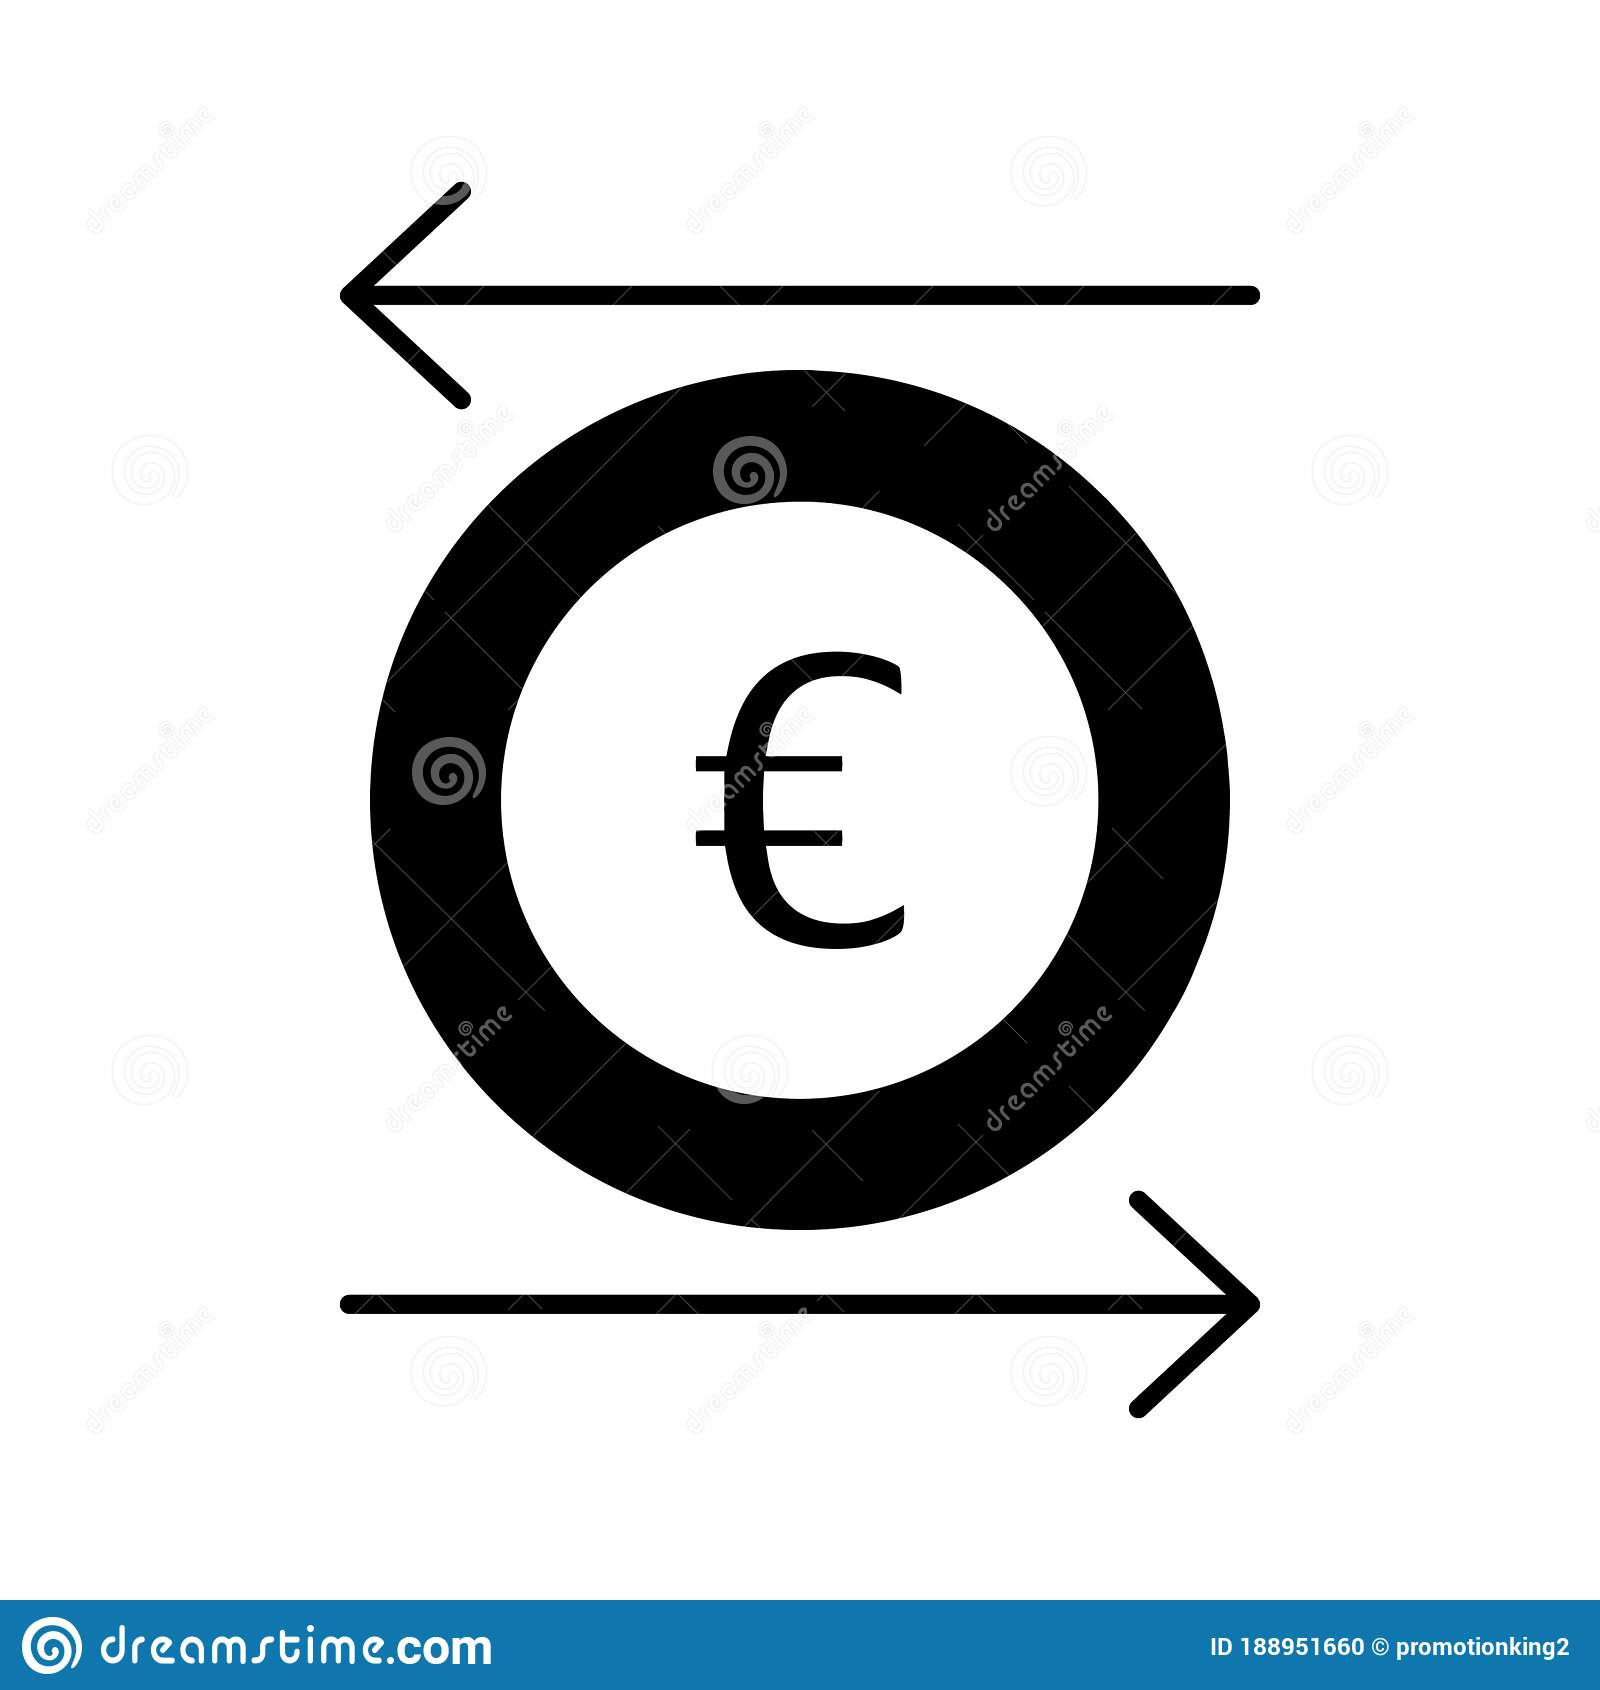 Europe Edit Stock Illustrations 586 Europe Edit Stock Illustrations Vectors Clipart Dreamstime